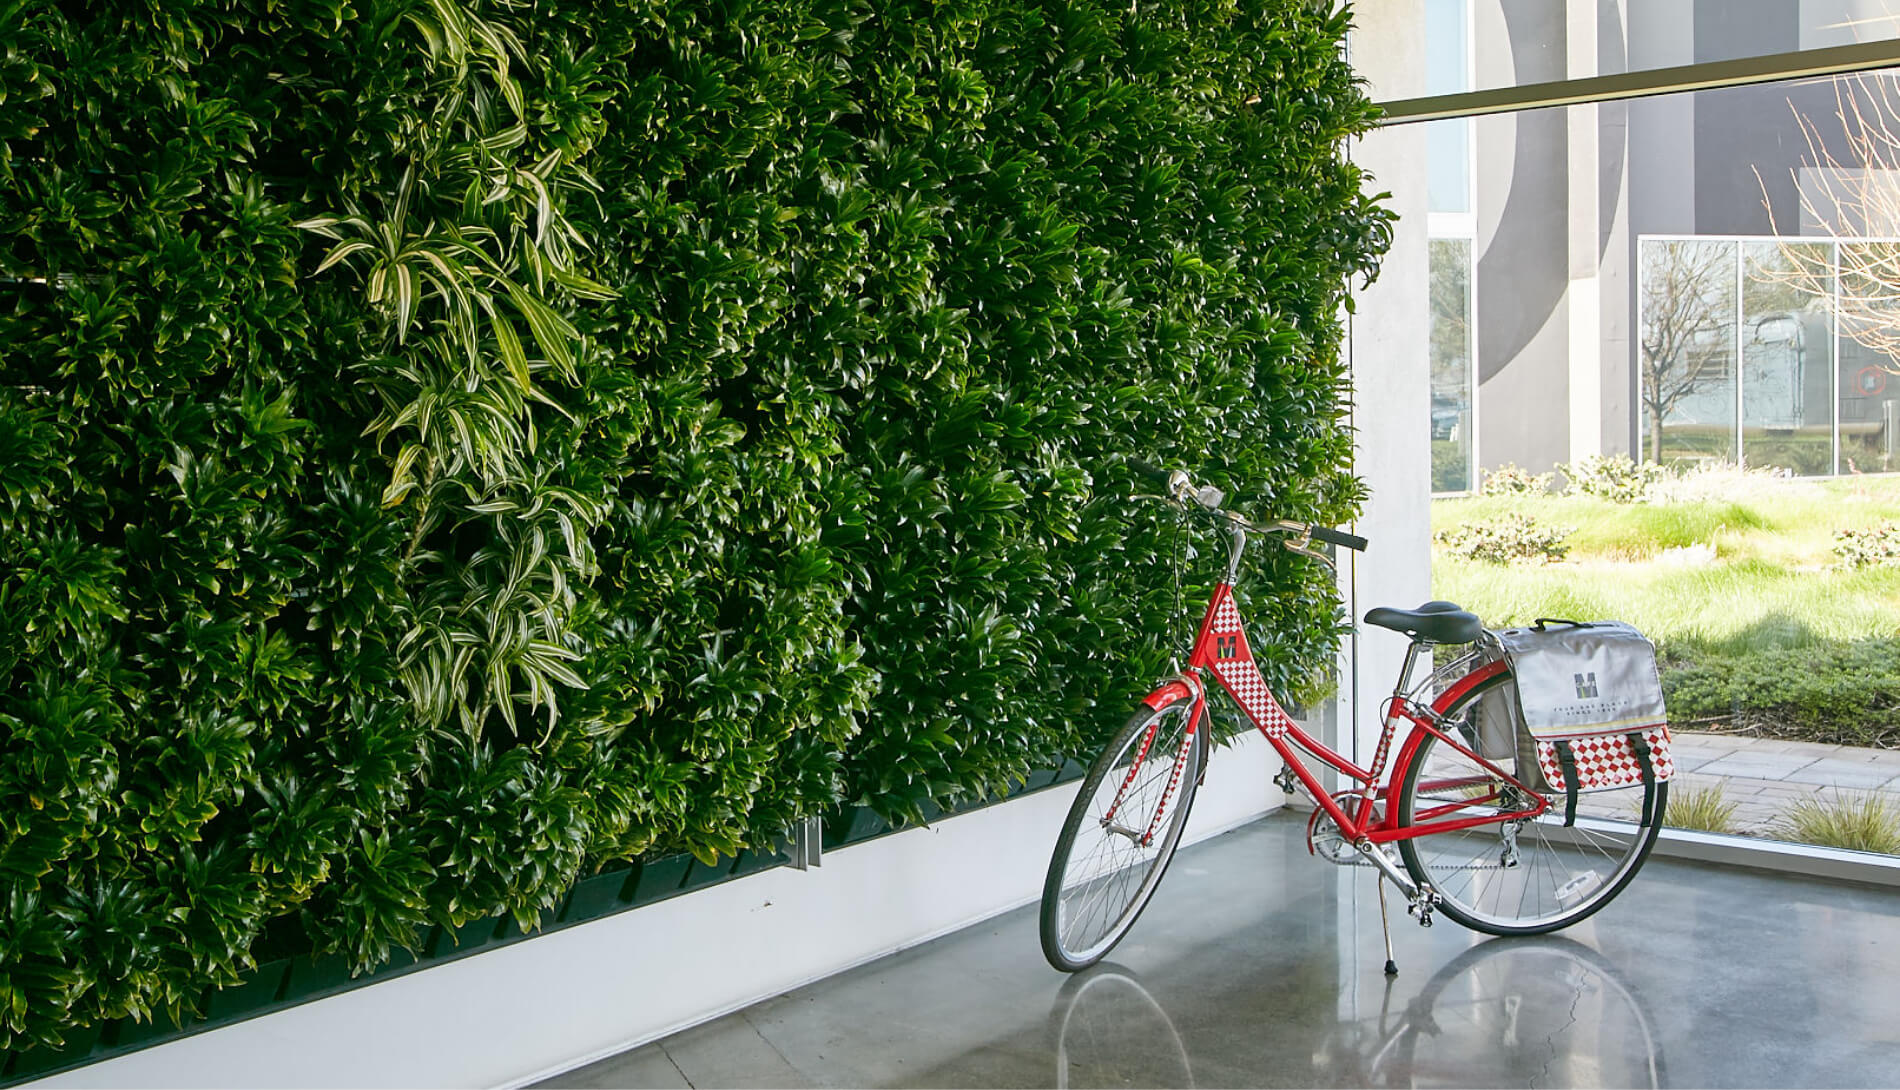 Green plant wall inside office with a bicycle parked on floor